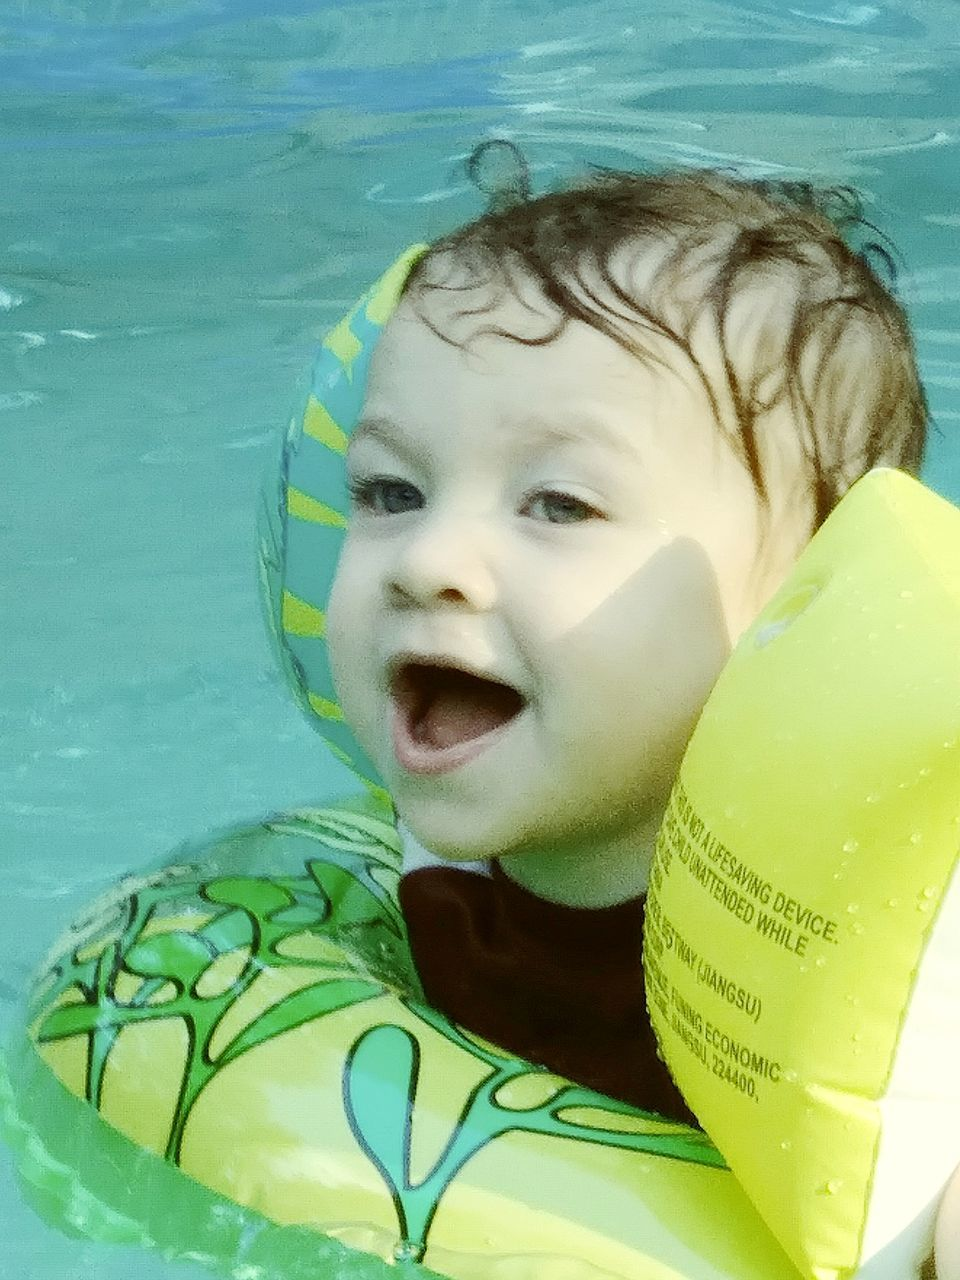 swimming pool, childhood, one person, baby, innocence, water, real people, babyhood, day, cute, outdoors, close-up